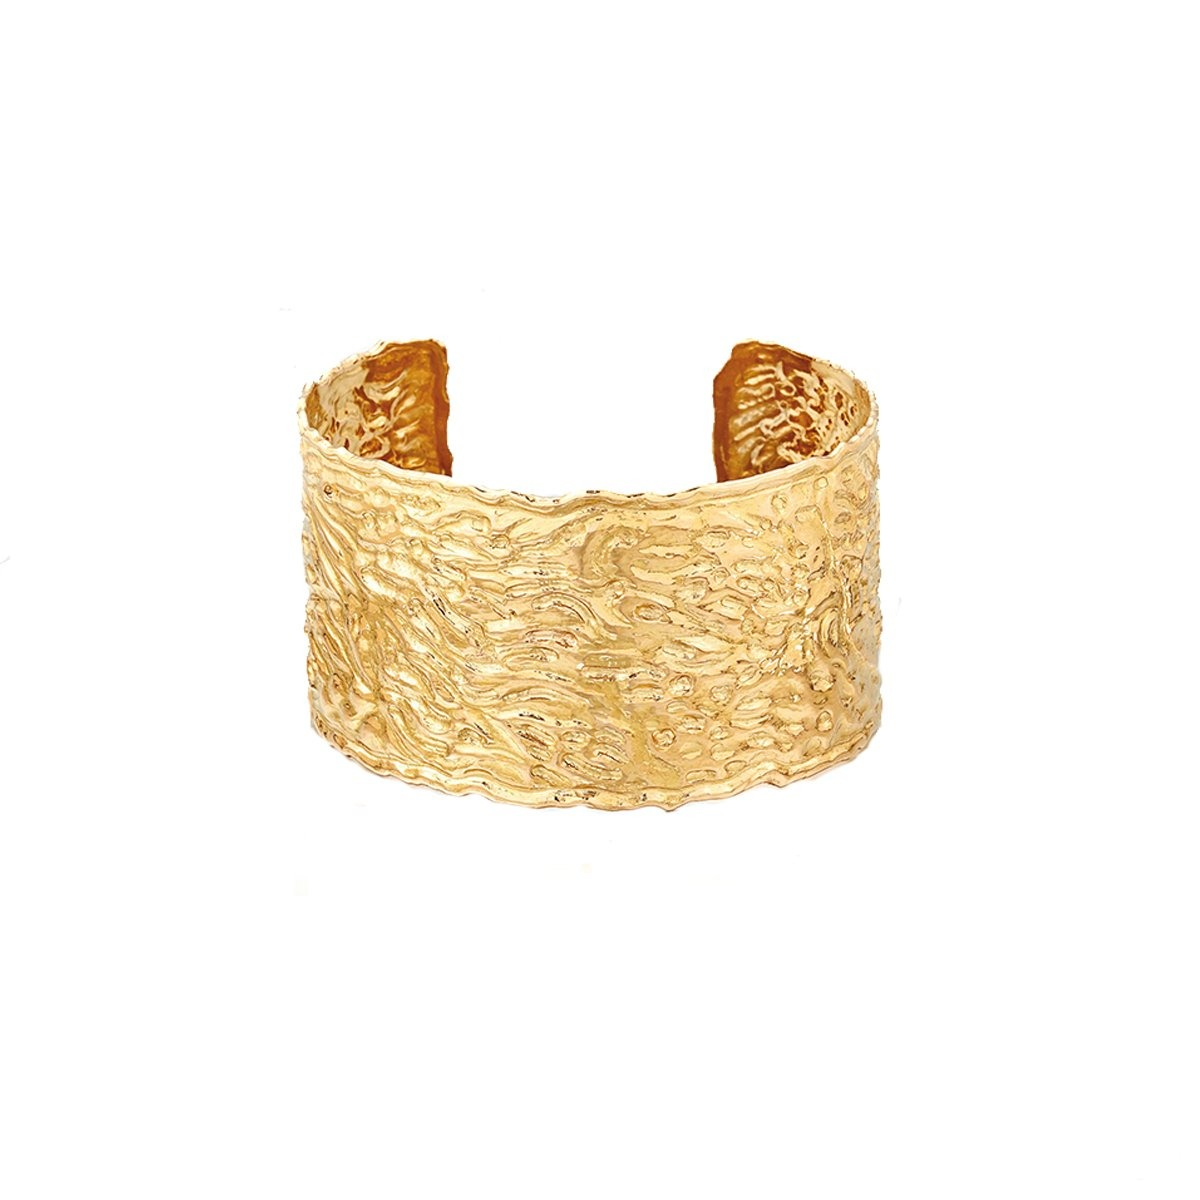 SCOTTISH GOLD COLLECTION: HAMMERED CUFF - Hamilton & Inches